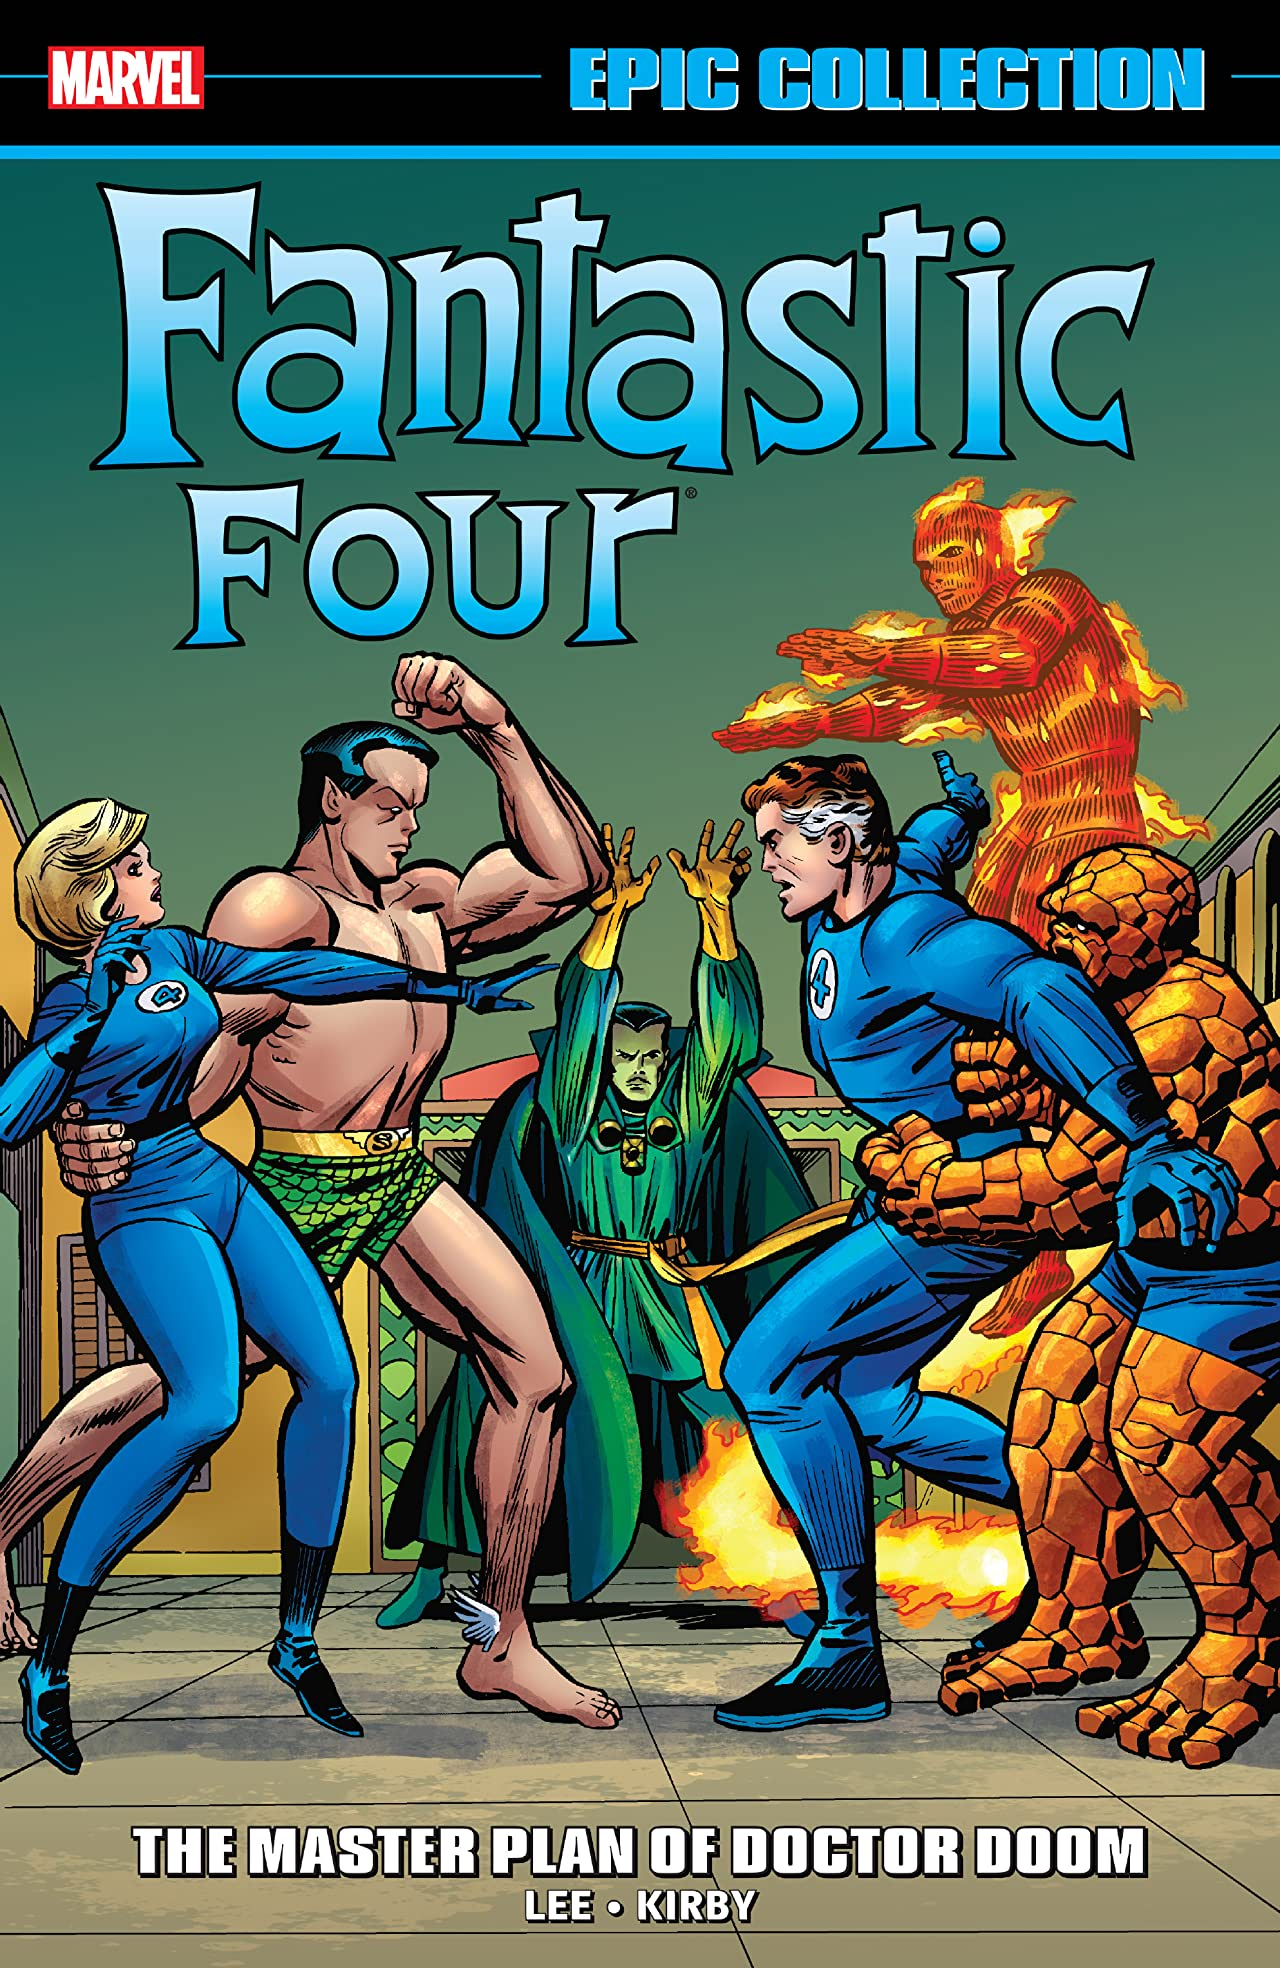 FANTASTIC FOUR EPIC COLLECTION: THE MASTER PLAN OF DOCTOR DOOM TPB (Trade Paperback)